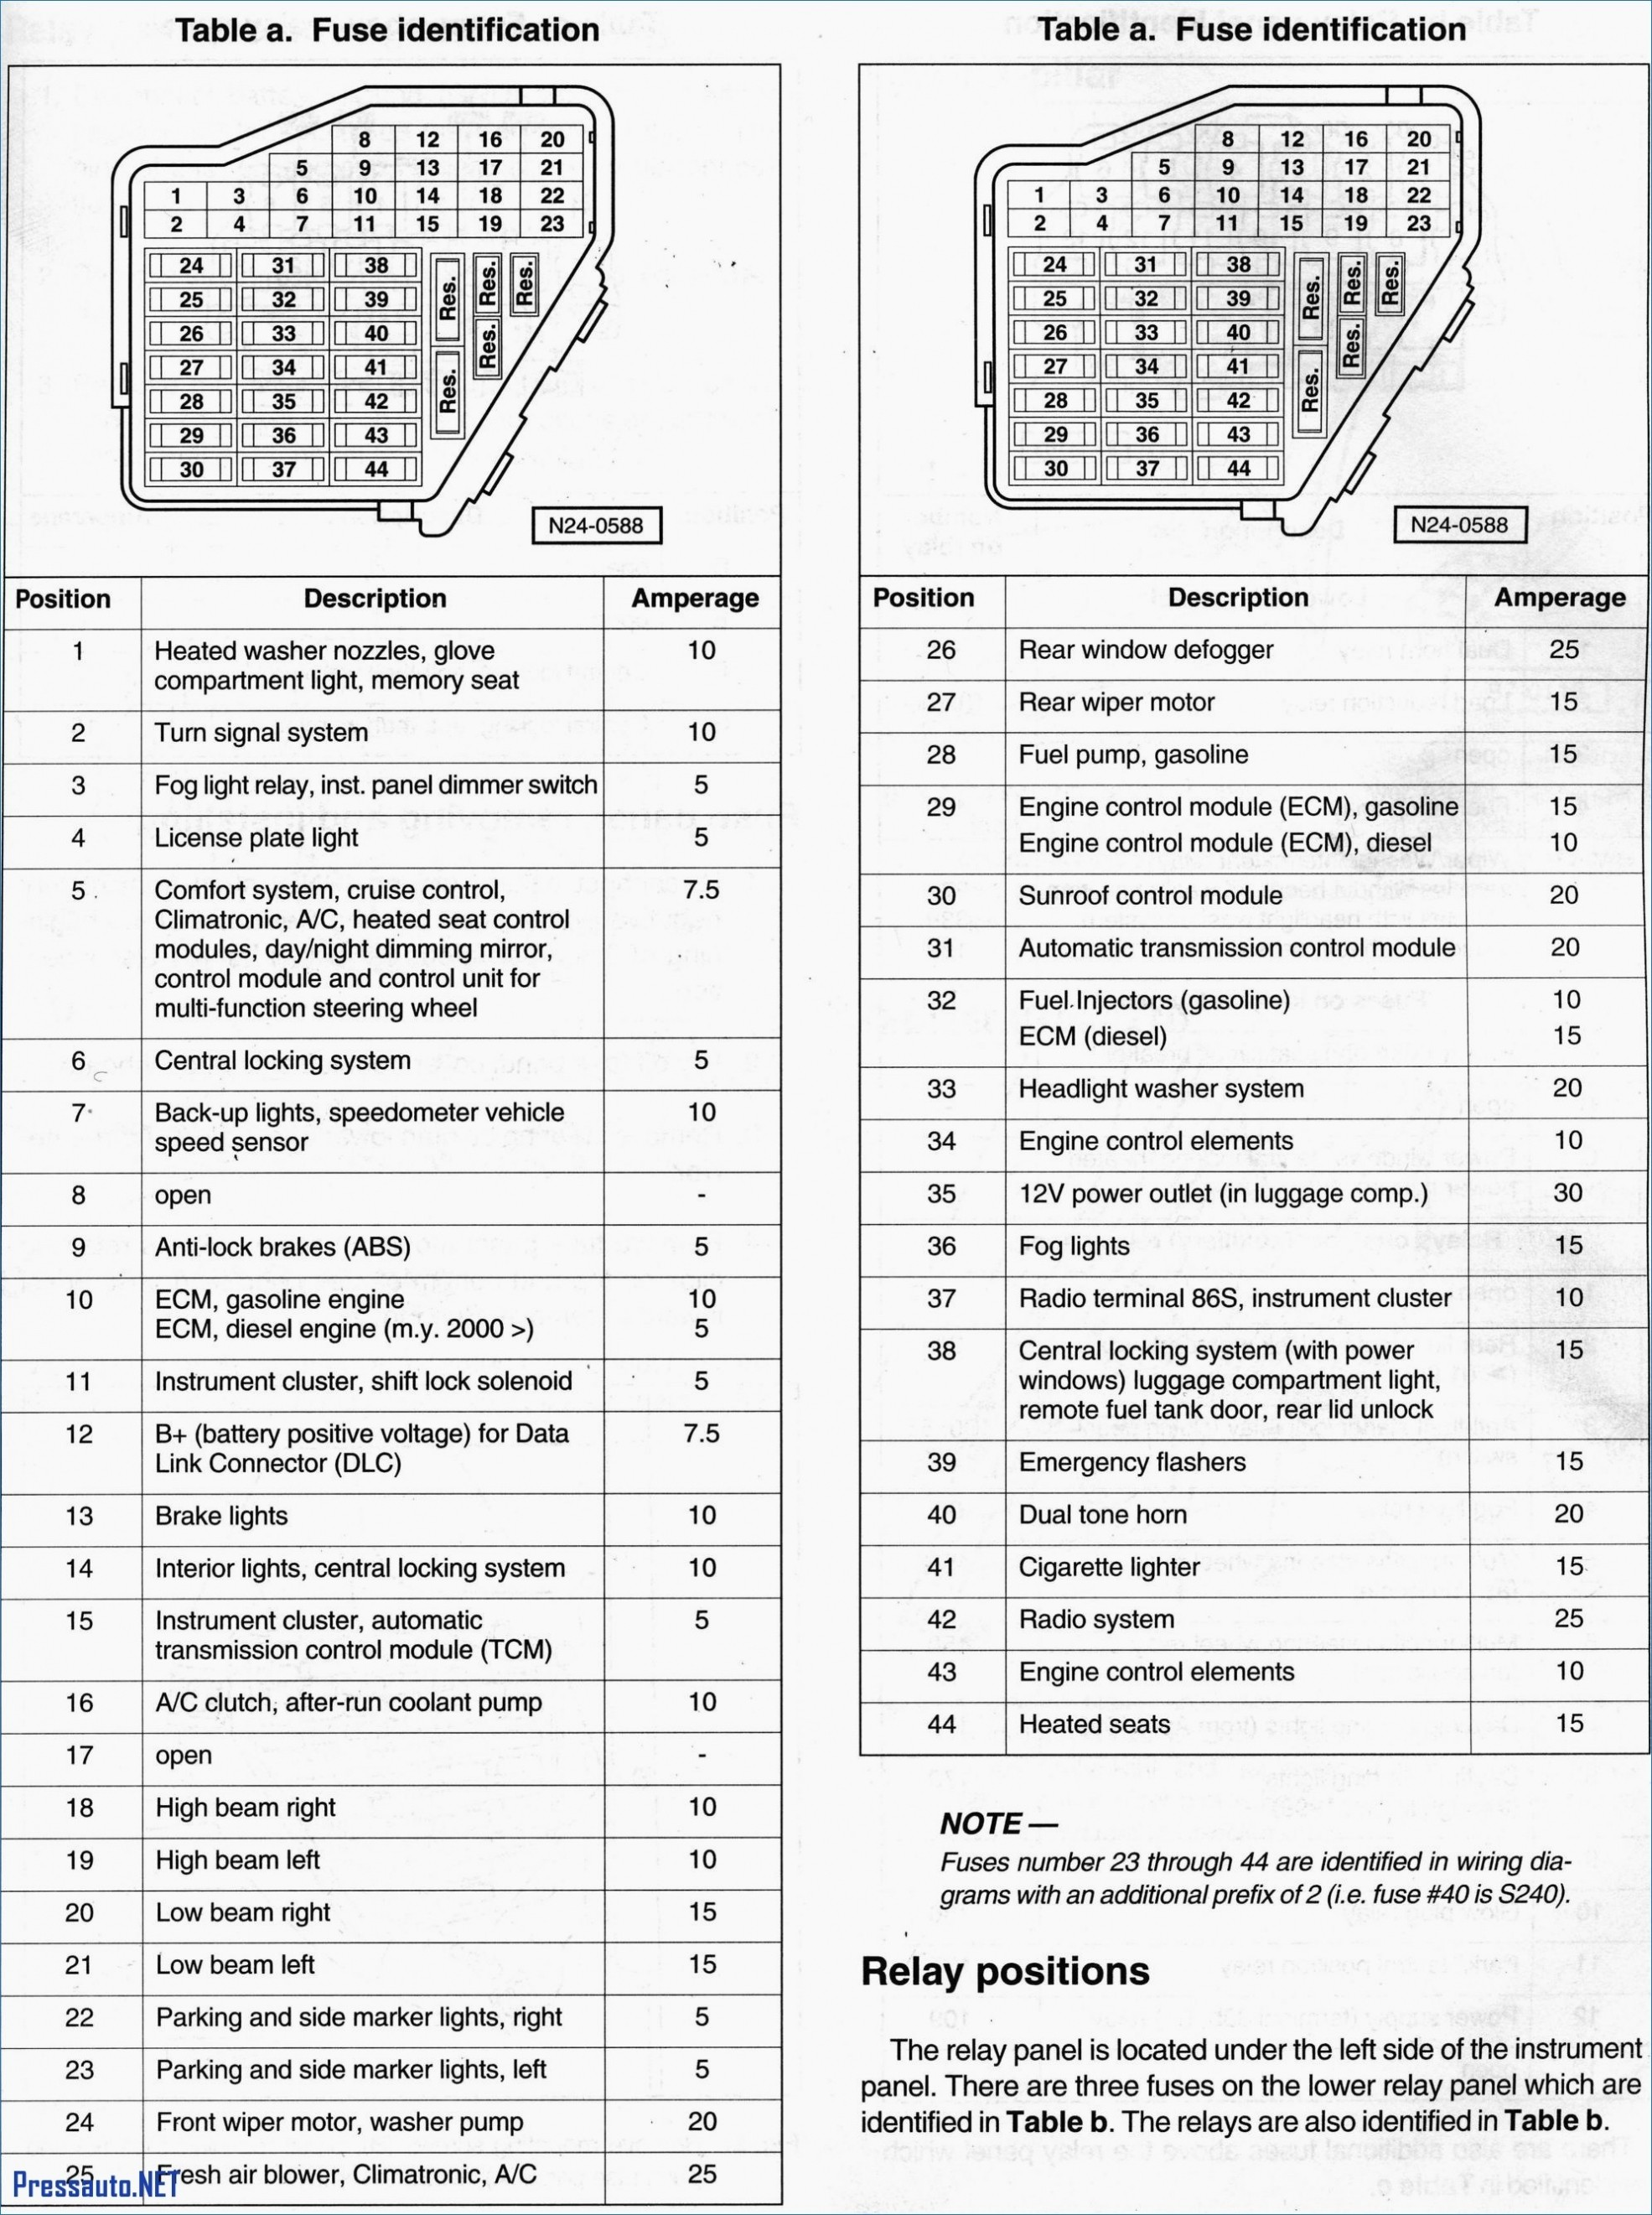 Audi A8 Fuse Box Diagram - Wiring Diagram Data rich-build -  rich-build.portorhoca.it | Audi A8 Fuse Box |  | rich-build.portorhoca.it